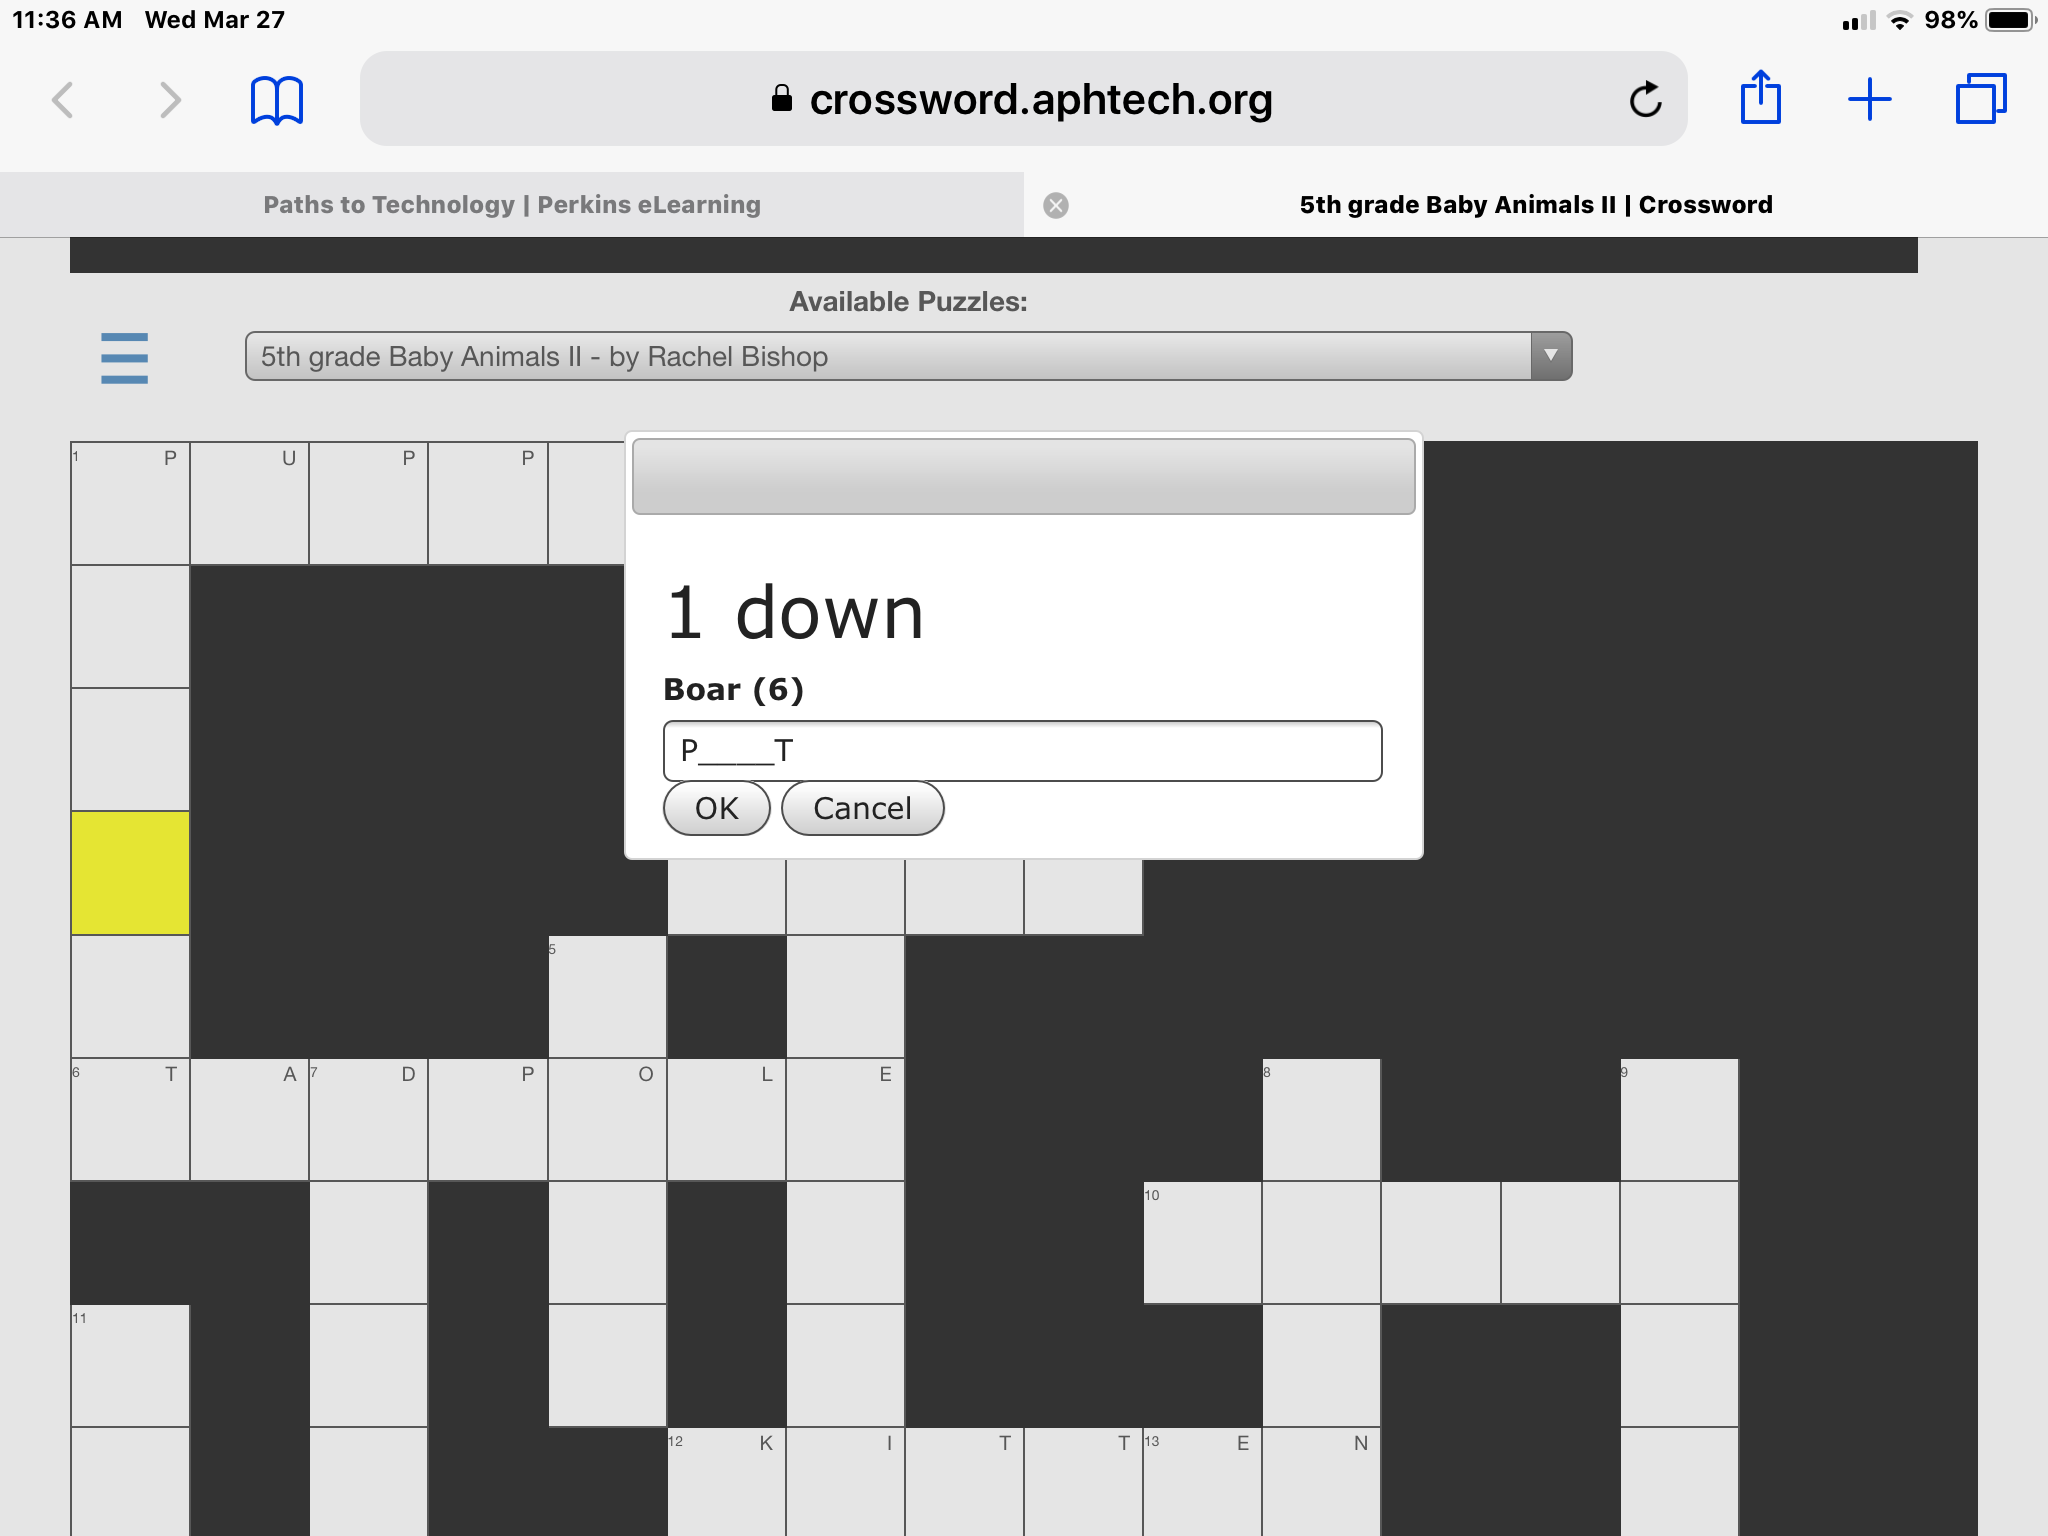 Magnificent Aph Accessible Crossword Puzzle App Review Paths To Home Interior And Landscaping Elinuenasavecom